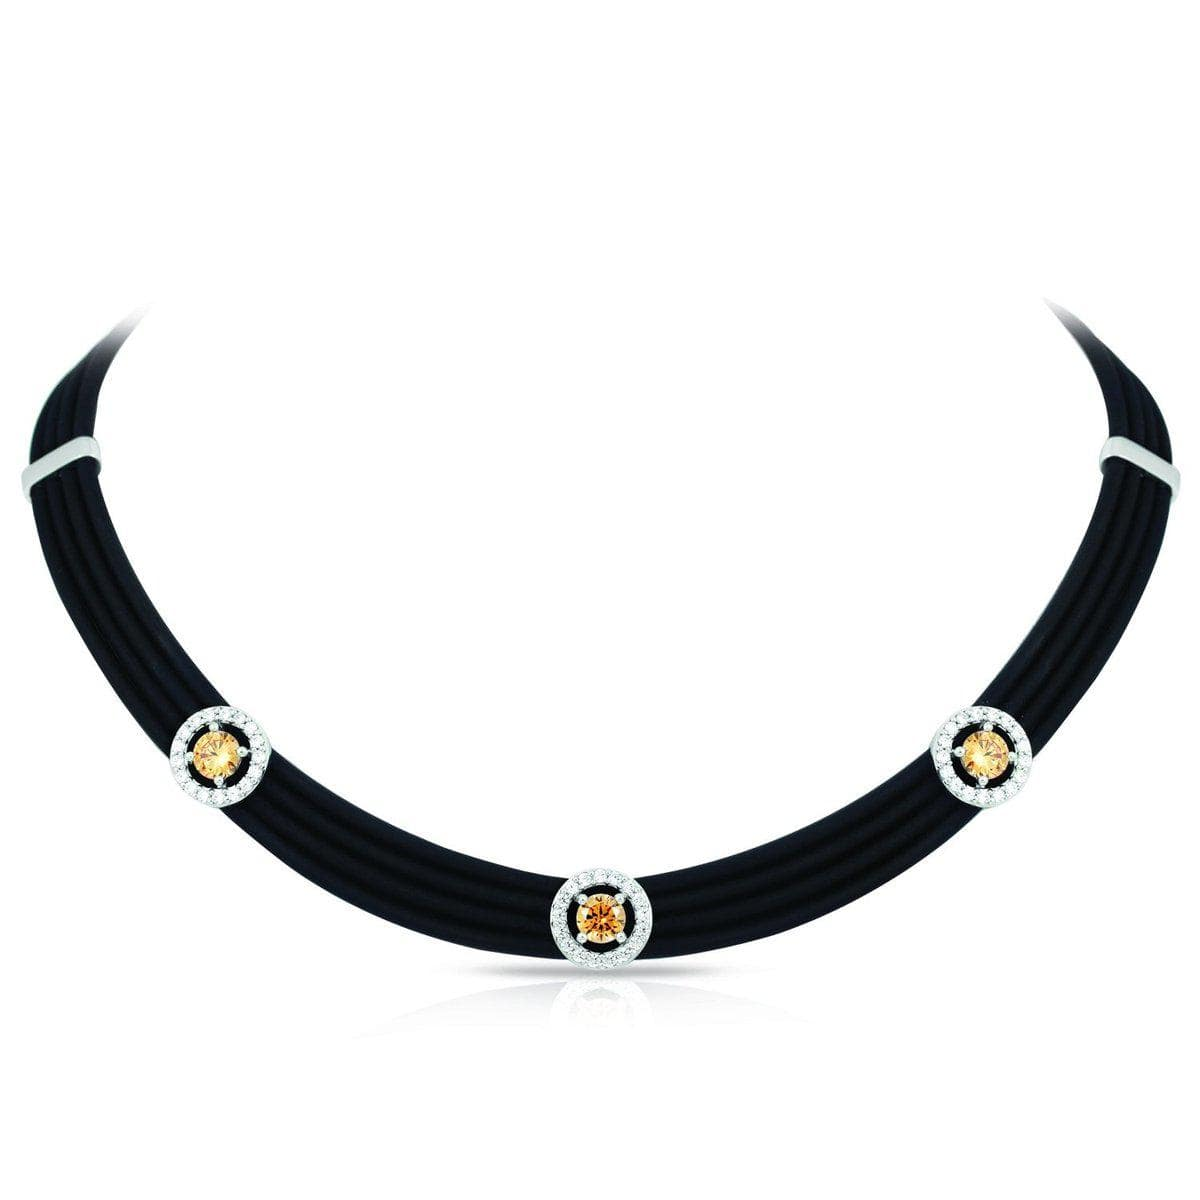 Circa Black and Champagne Necklace-Belle Etoile-Renee Taylor Gallery